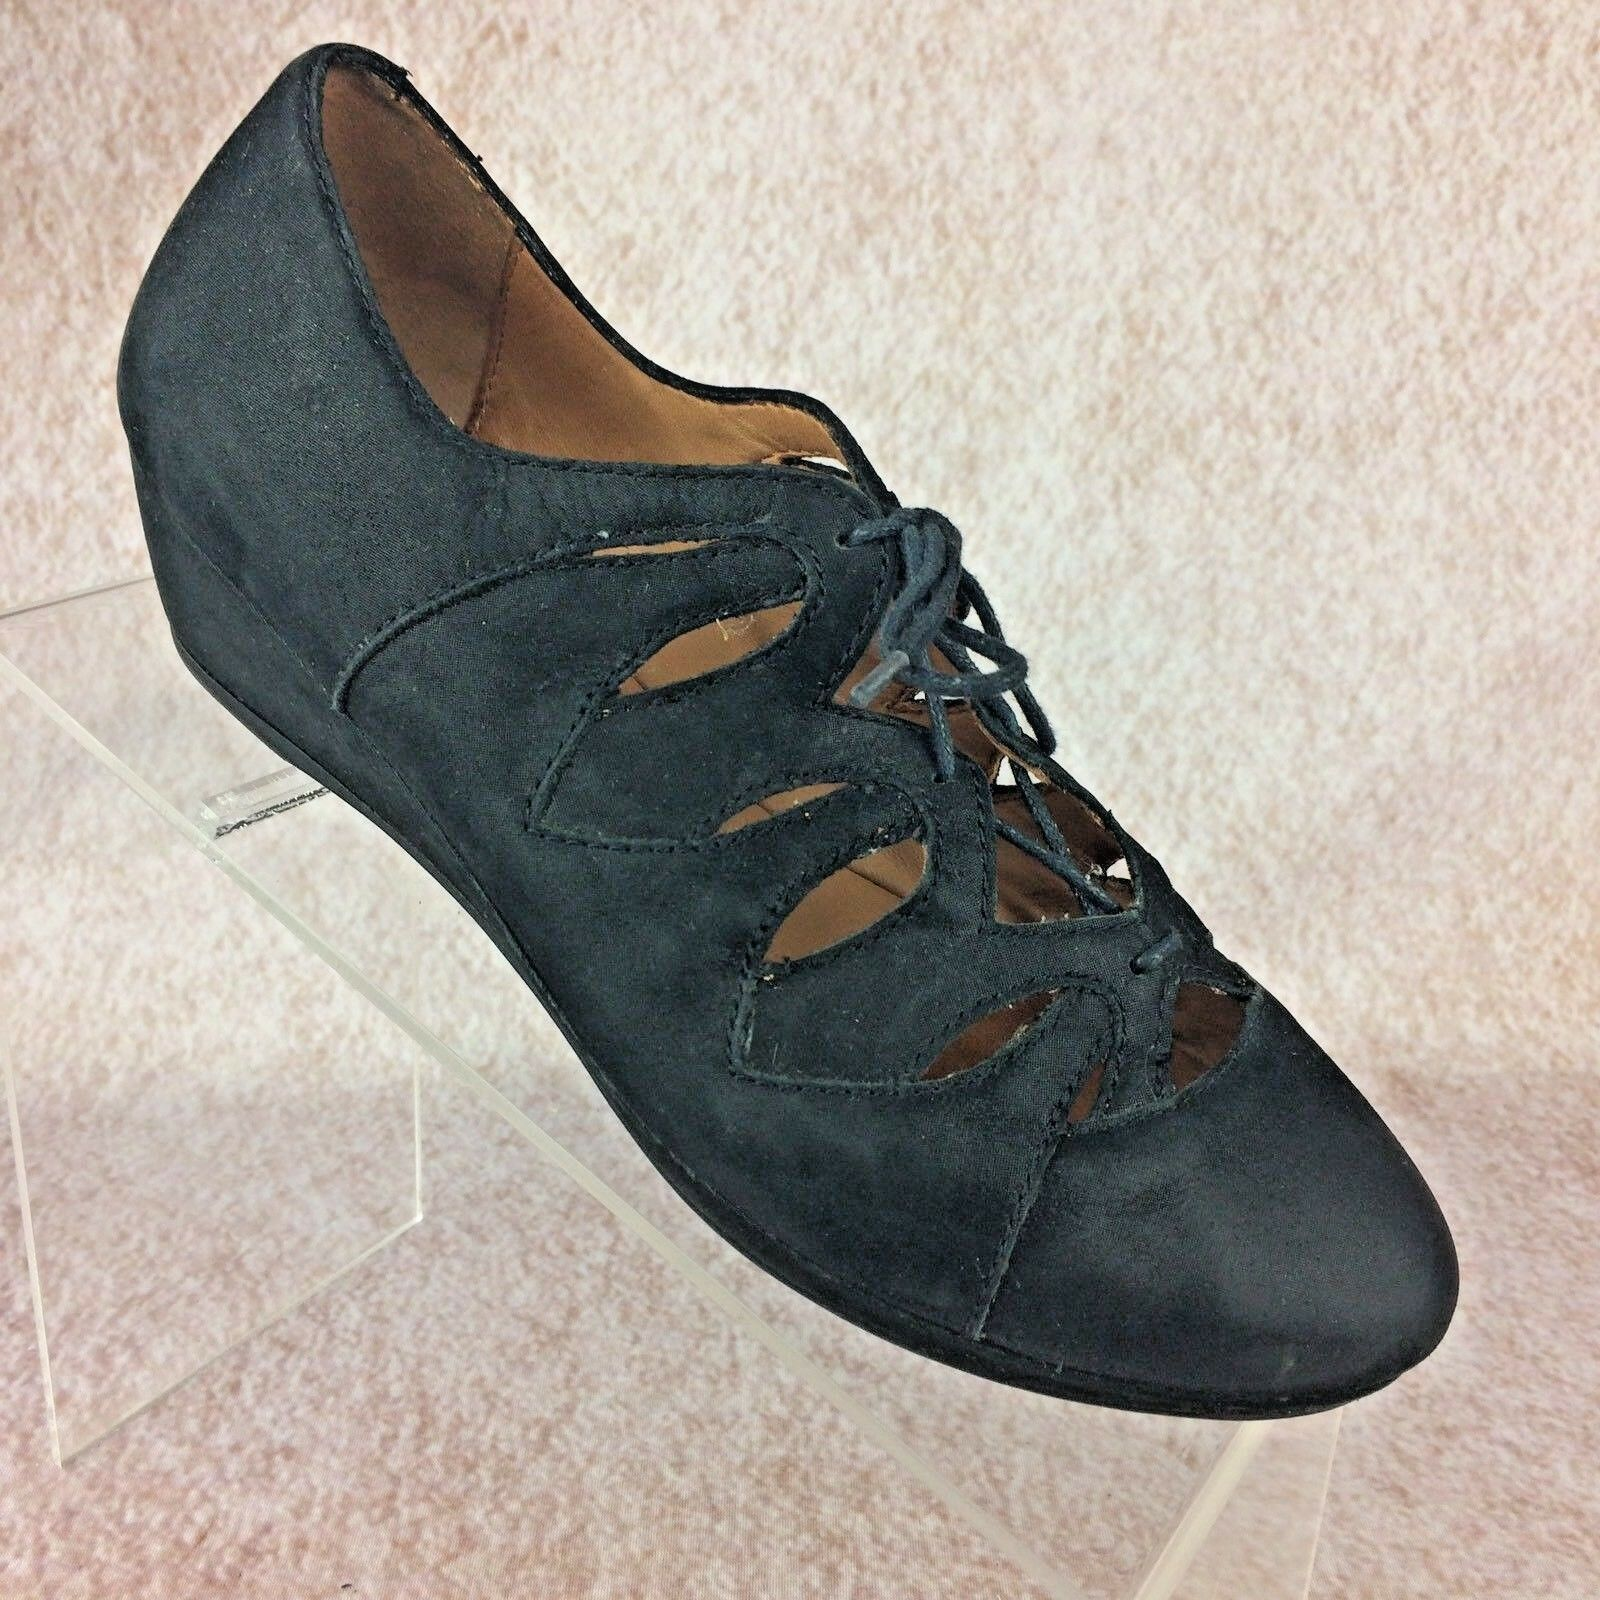 Damenschuhe GENTLE SOULS 6.5M NYE Nubuck Lace-Up Wedge Leder 1.5